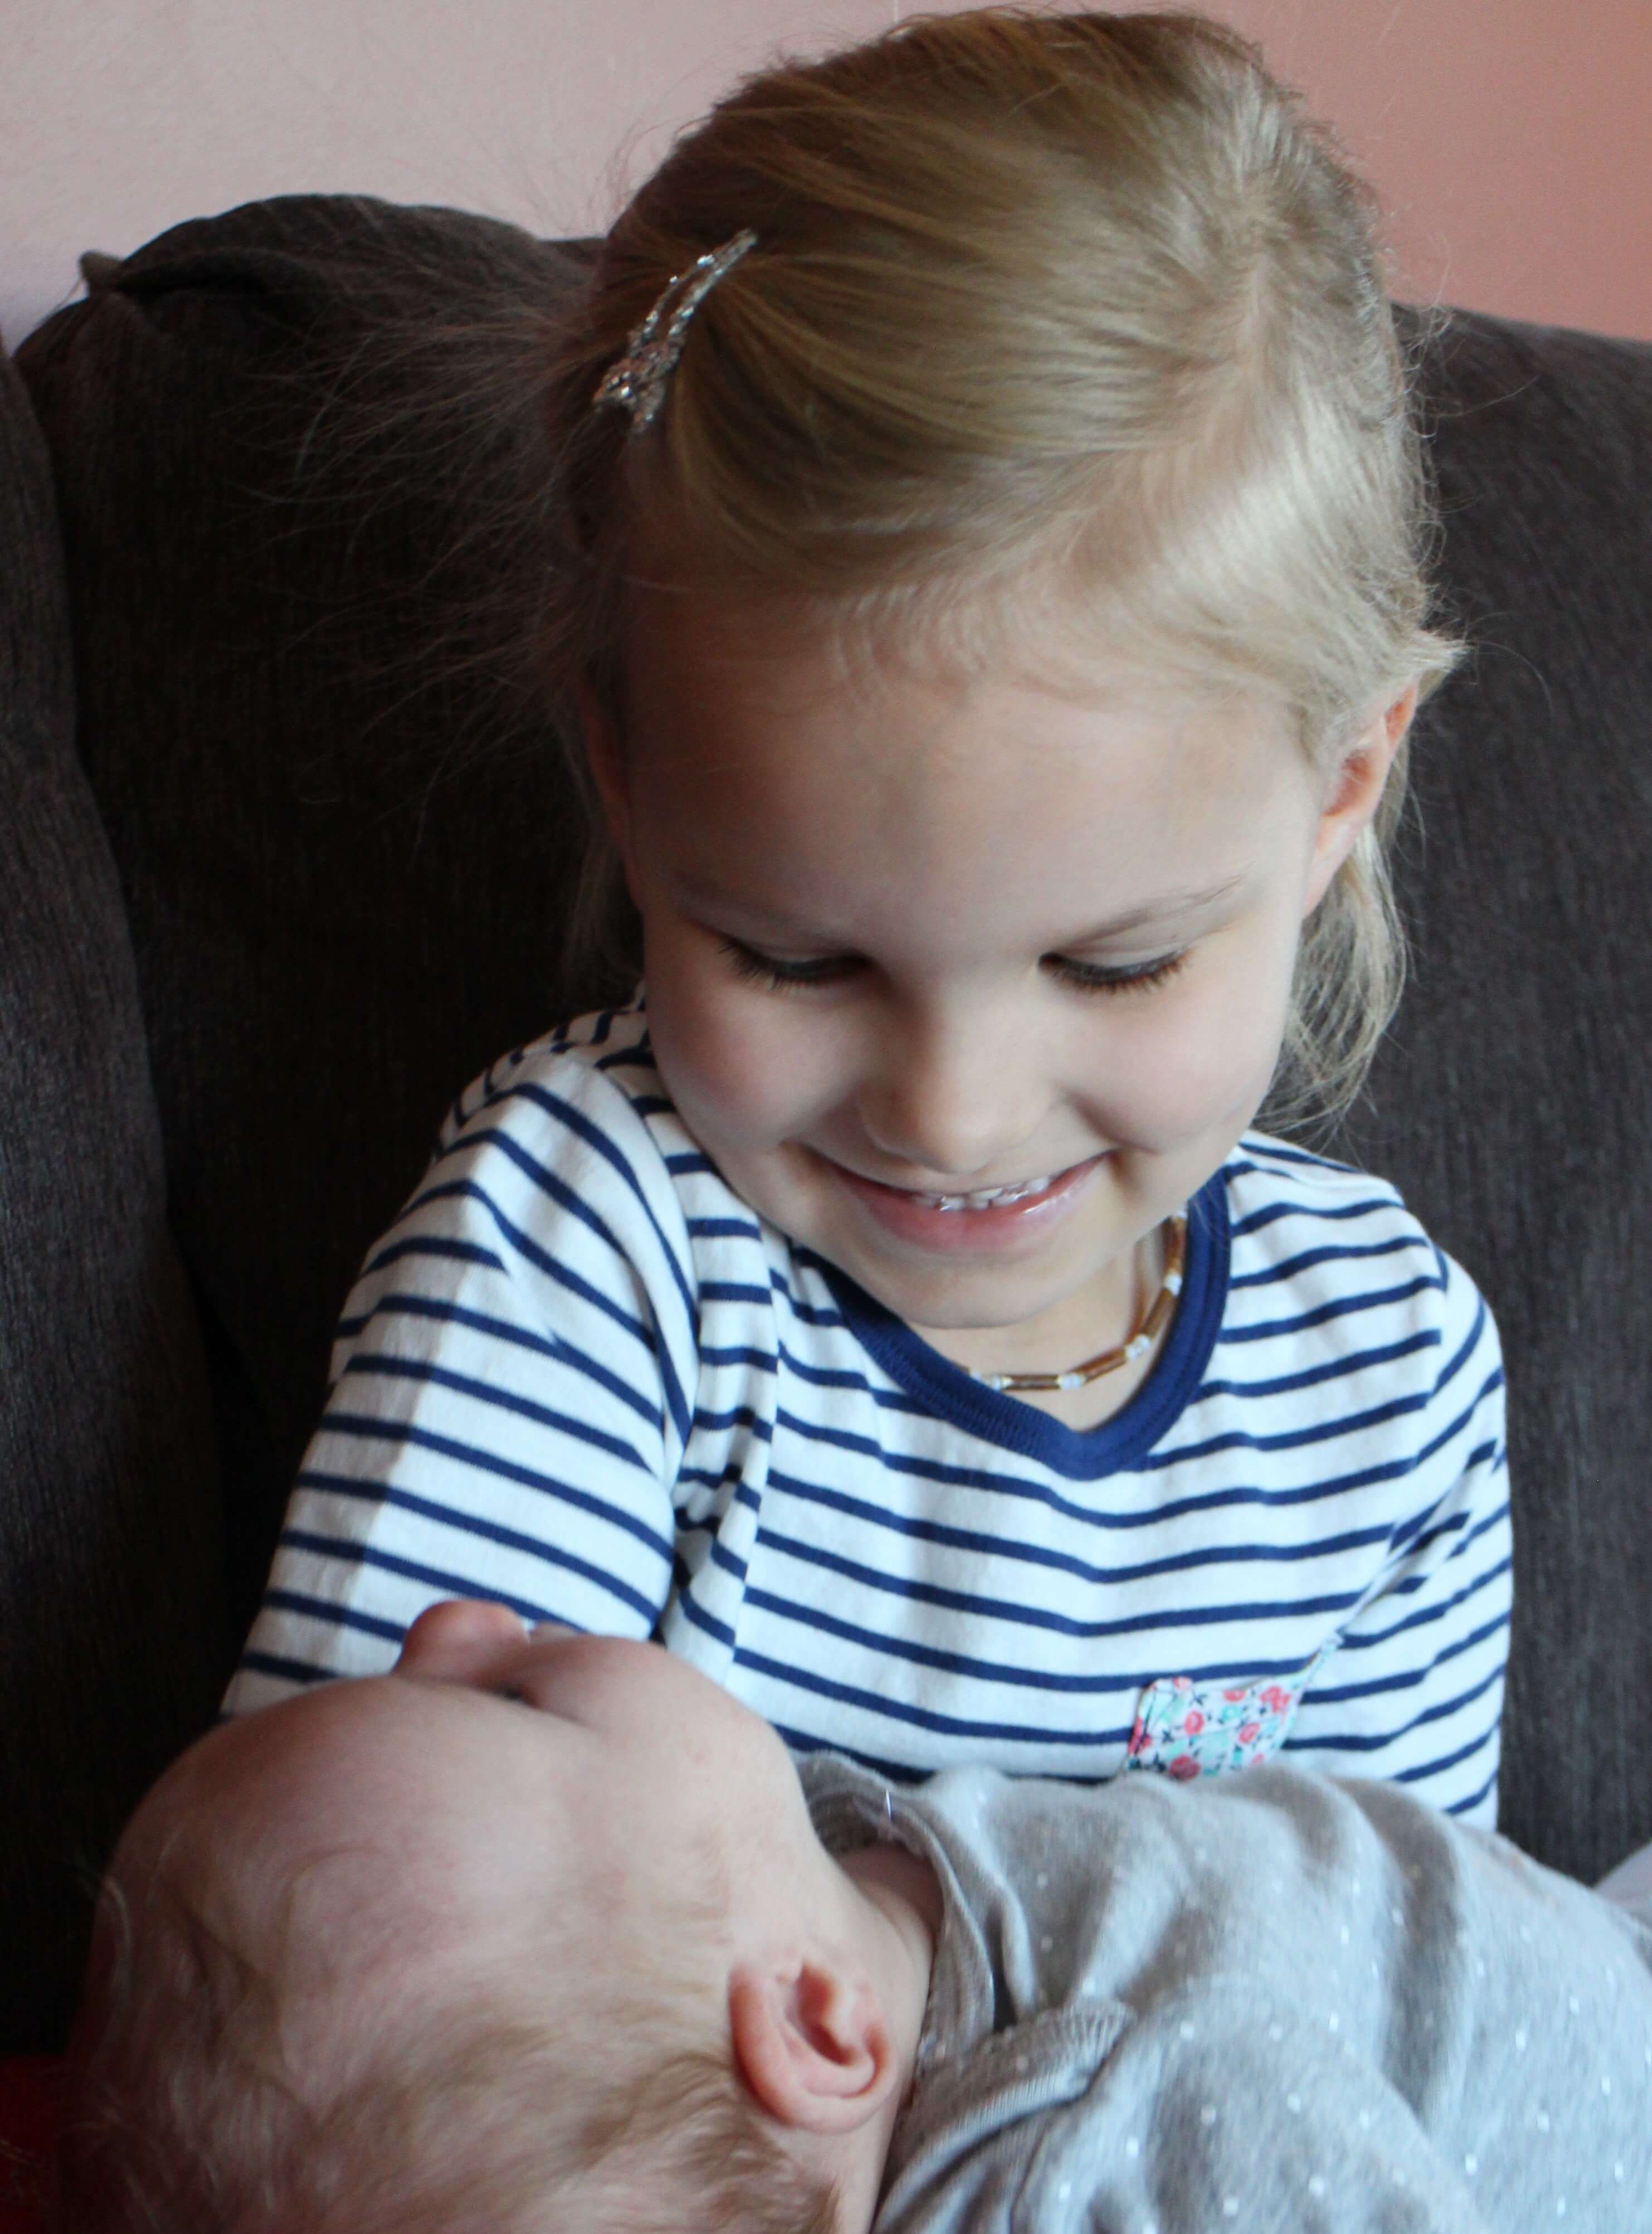 Jane cradling her little brother, recently born at JoySpring Midwifery